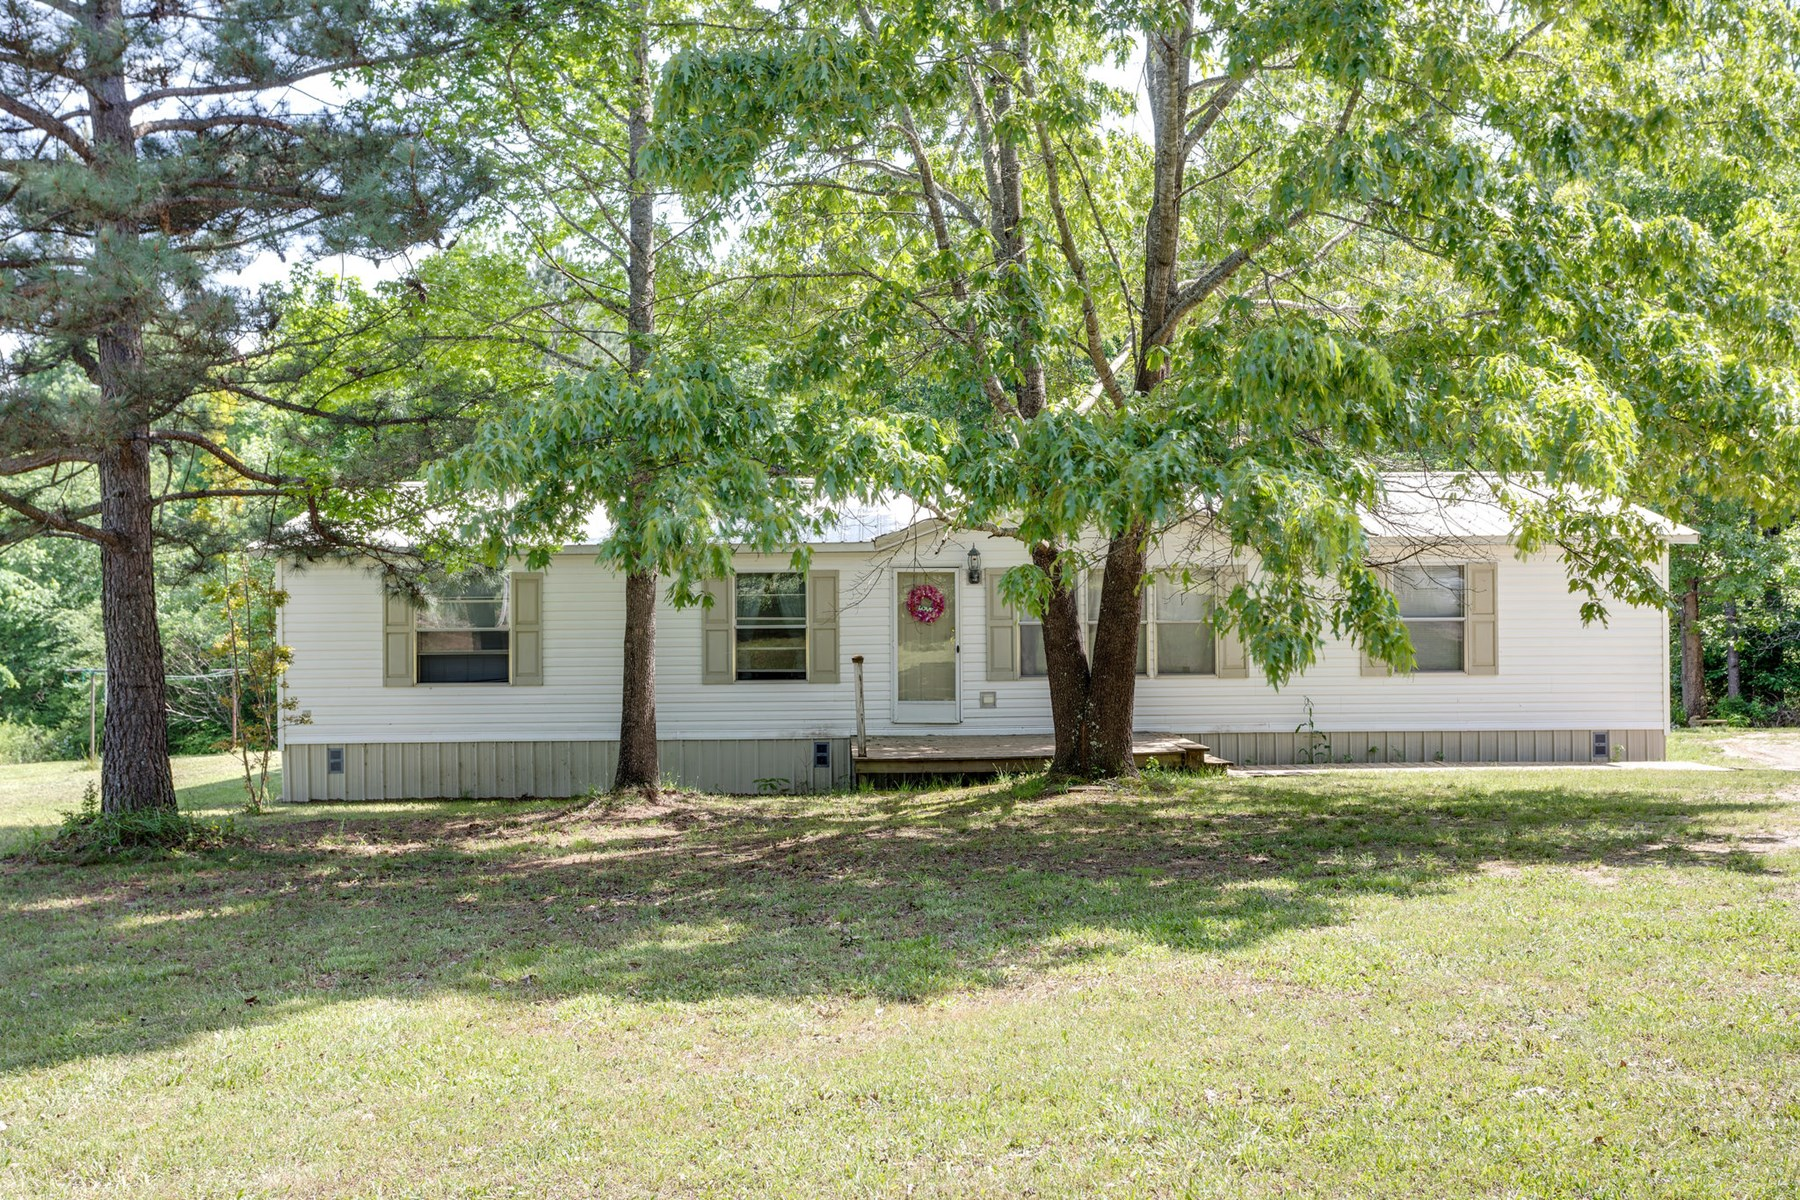 Country home with acreage in Lewis County Tennessee